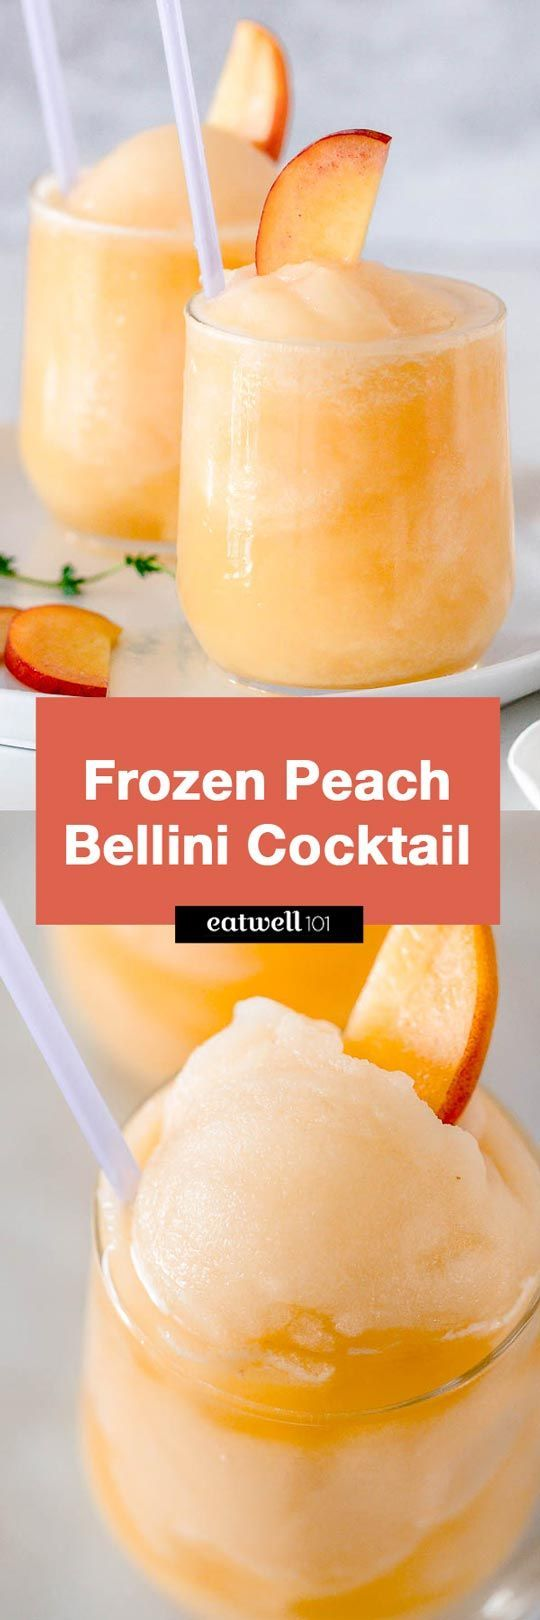 Photo of Frozen Peach Bellini Cocktail